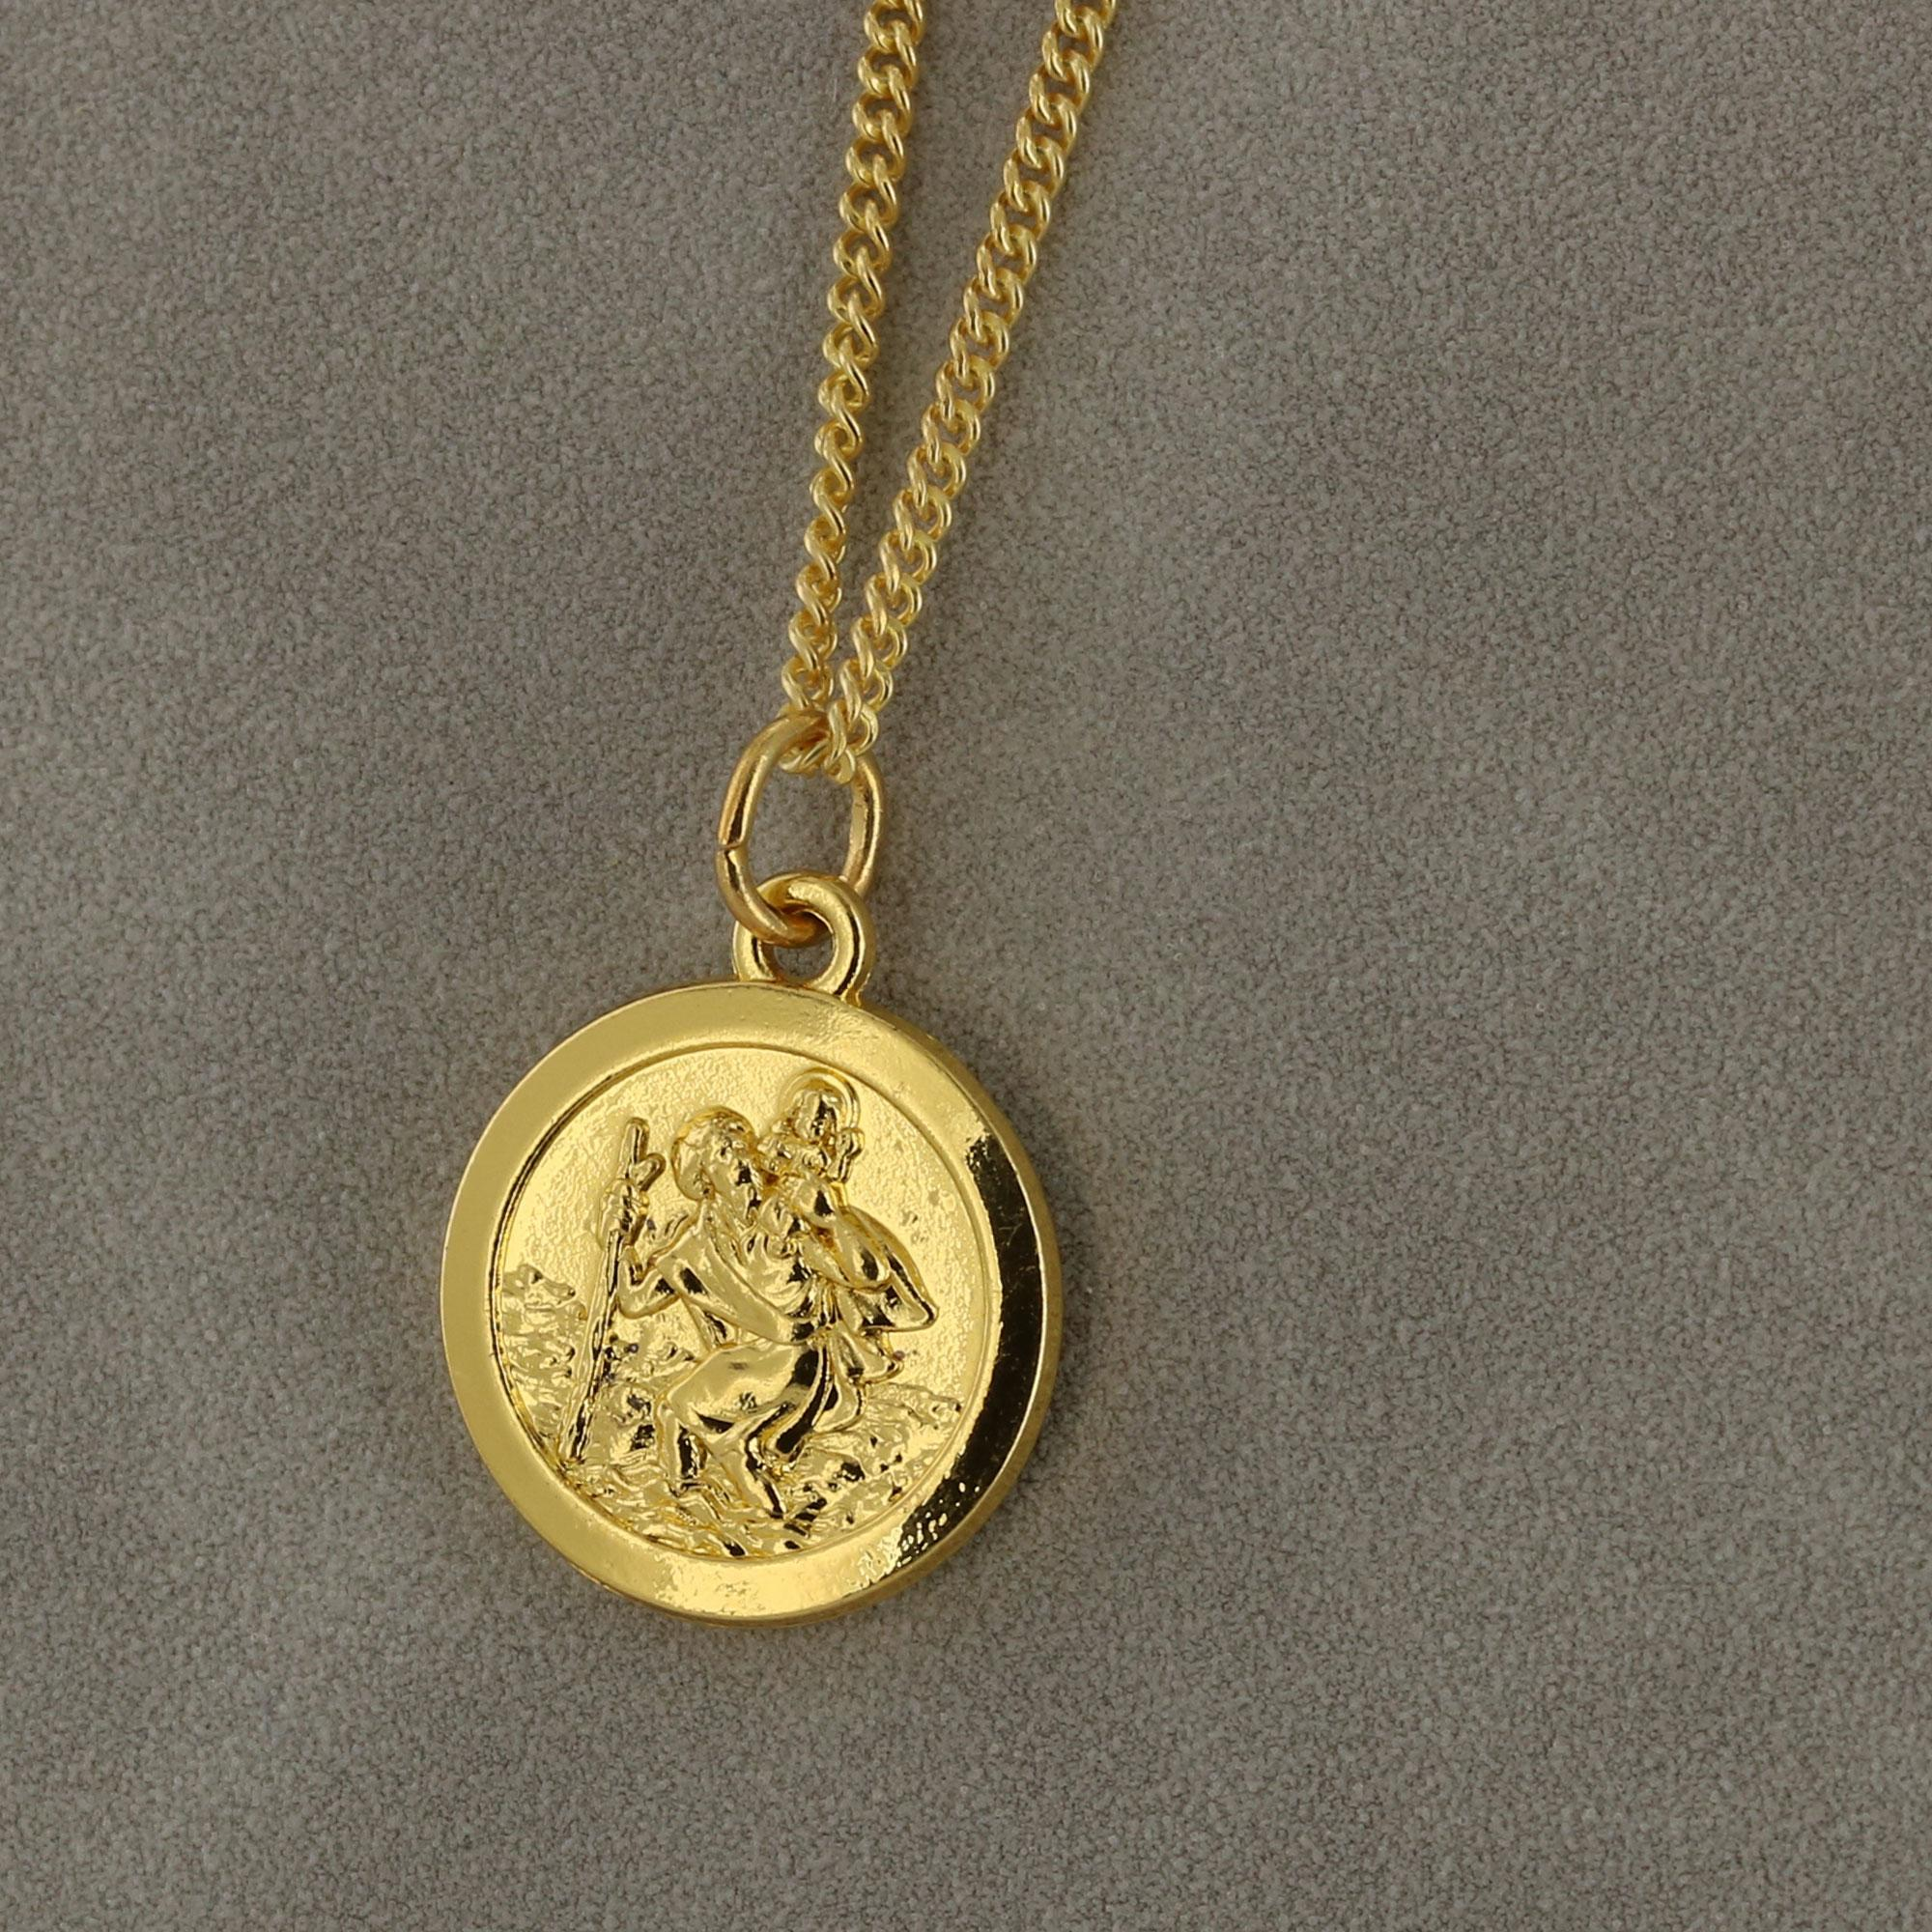 Gold Saint Christopher